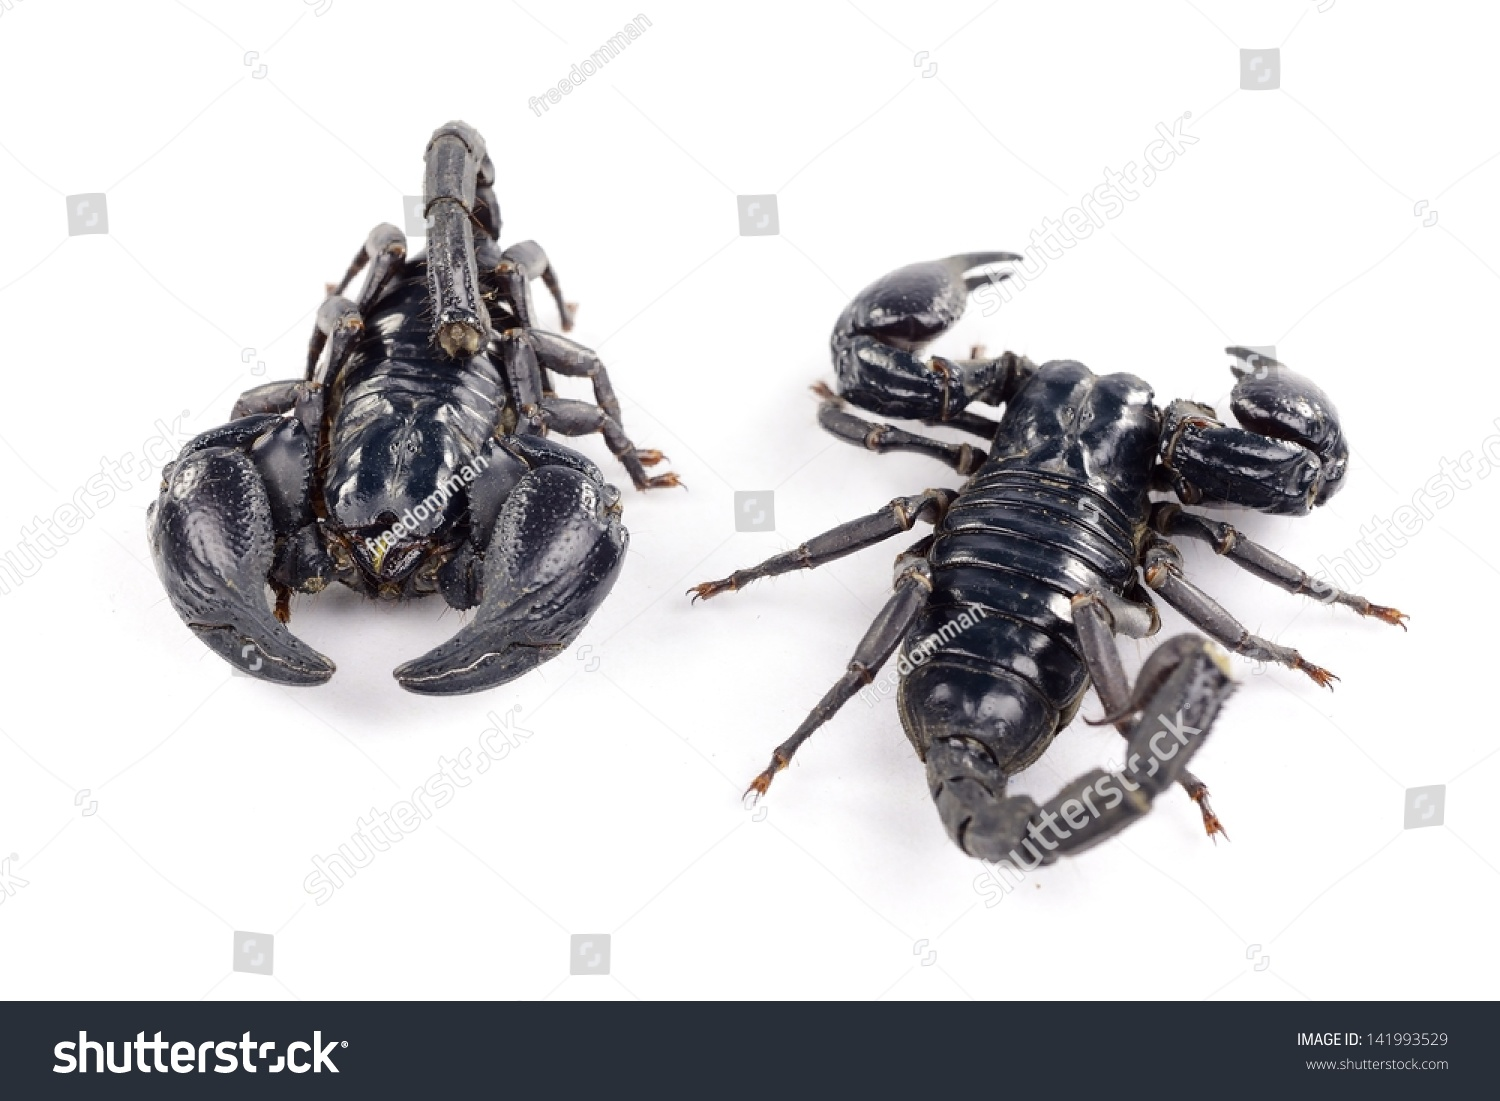 Black scorpion on white backgroun